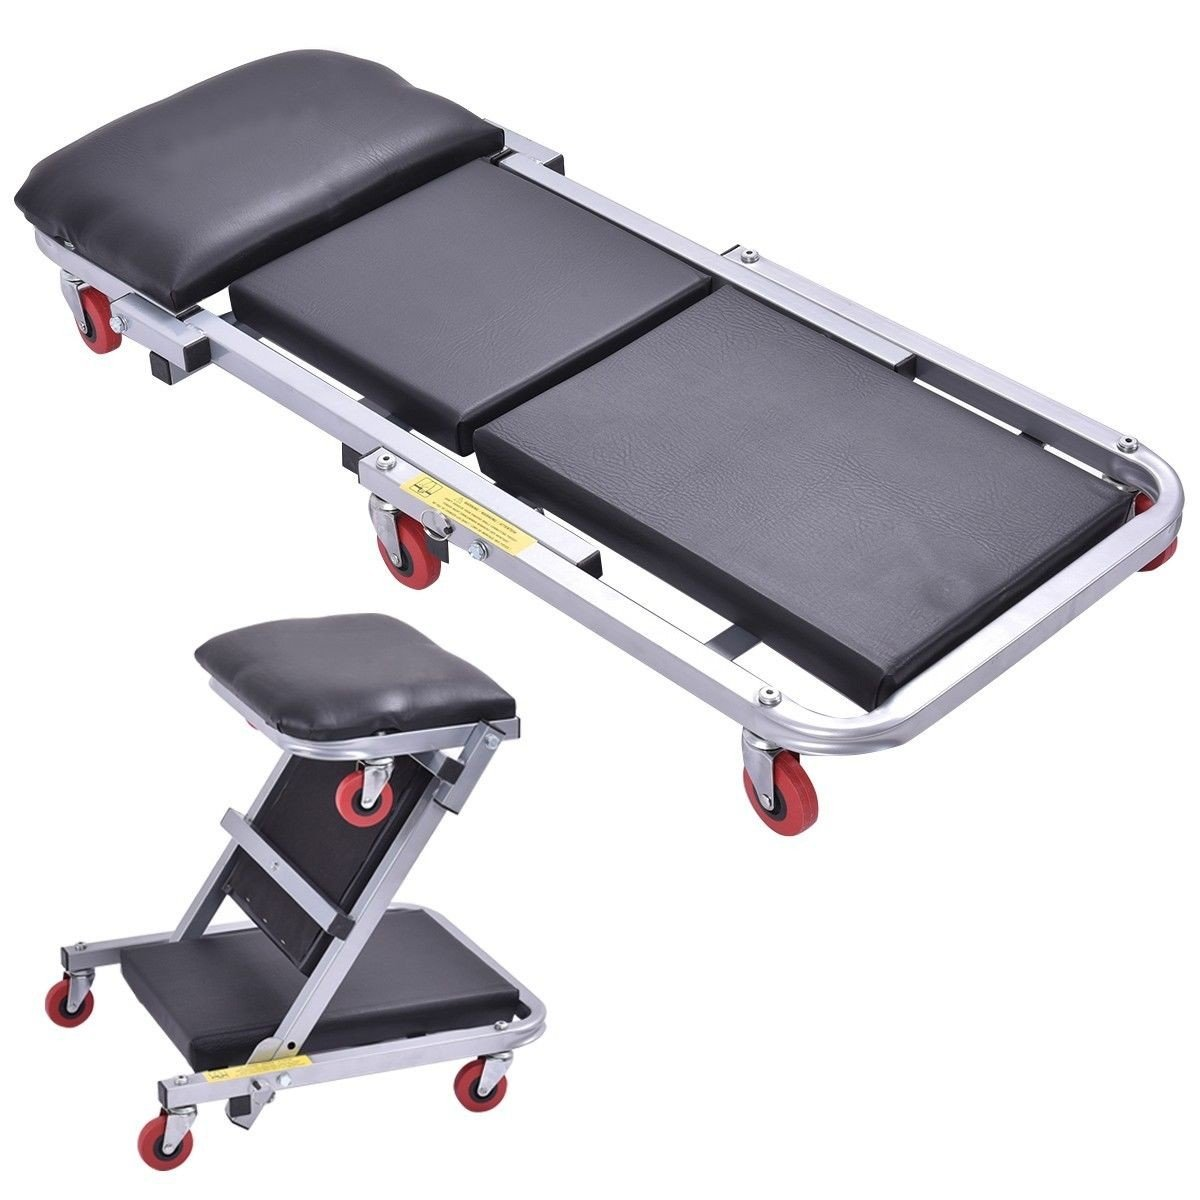 40'' 2 In 1 Foldable Mechanics Z Creeper Seat Rolling Chair Garage Work Stool - By Choice Products